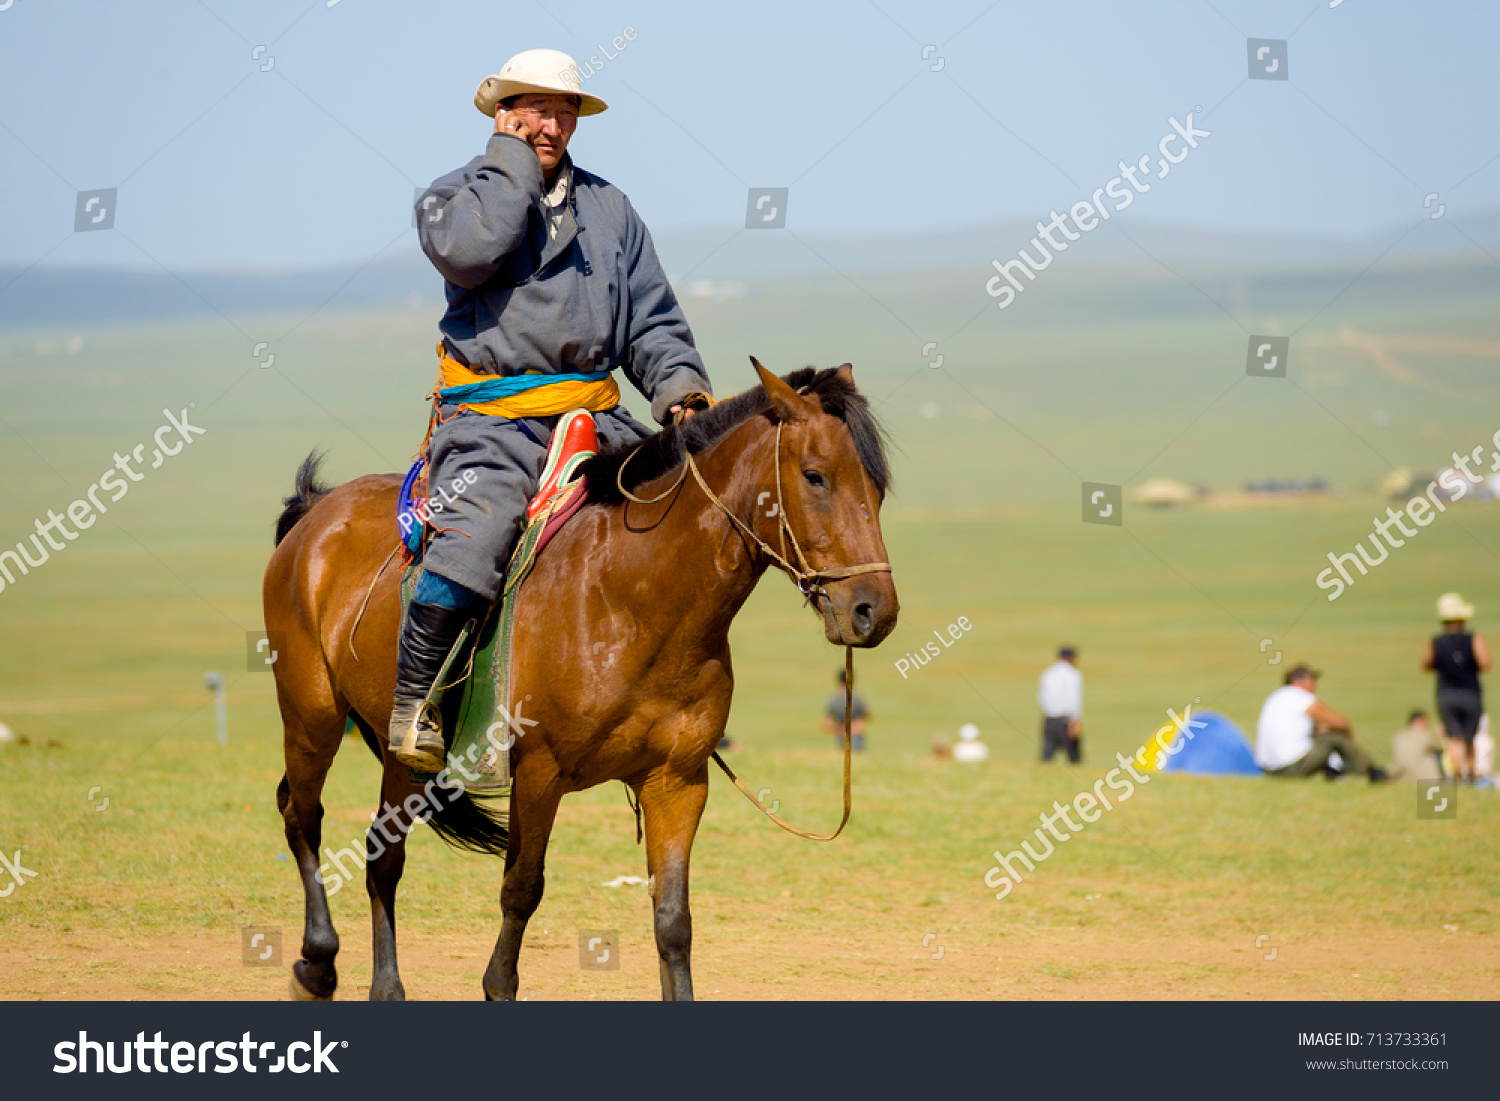 stock-photo-ulaanbaatar-mongolia-june-a-